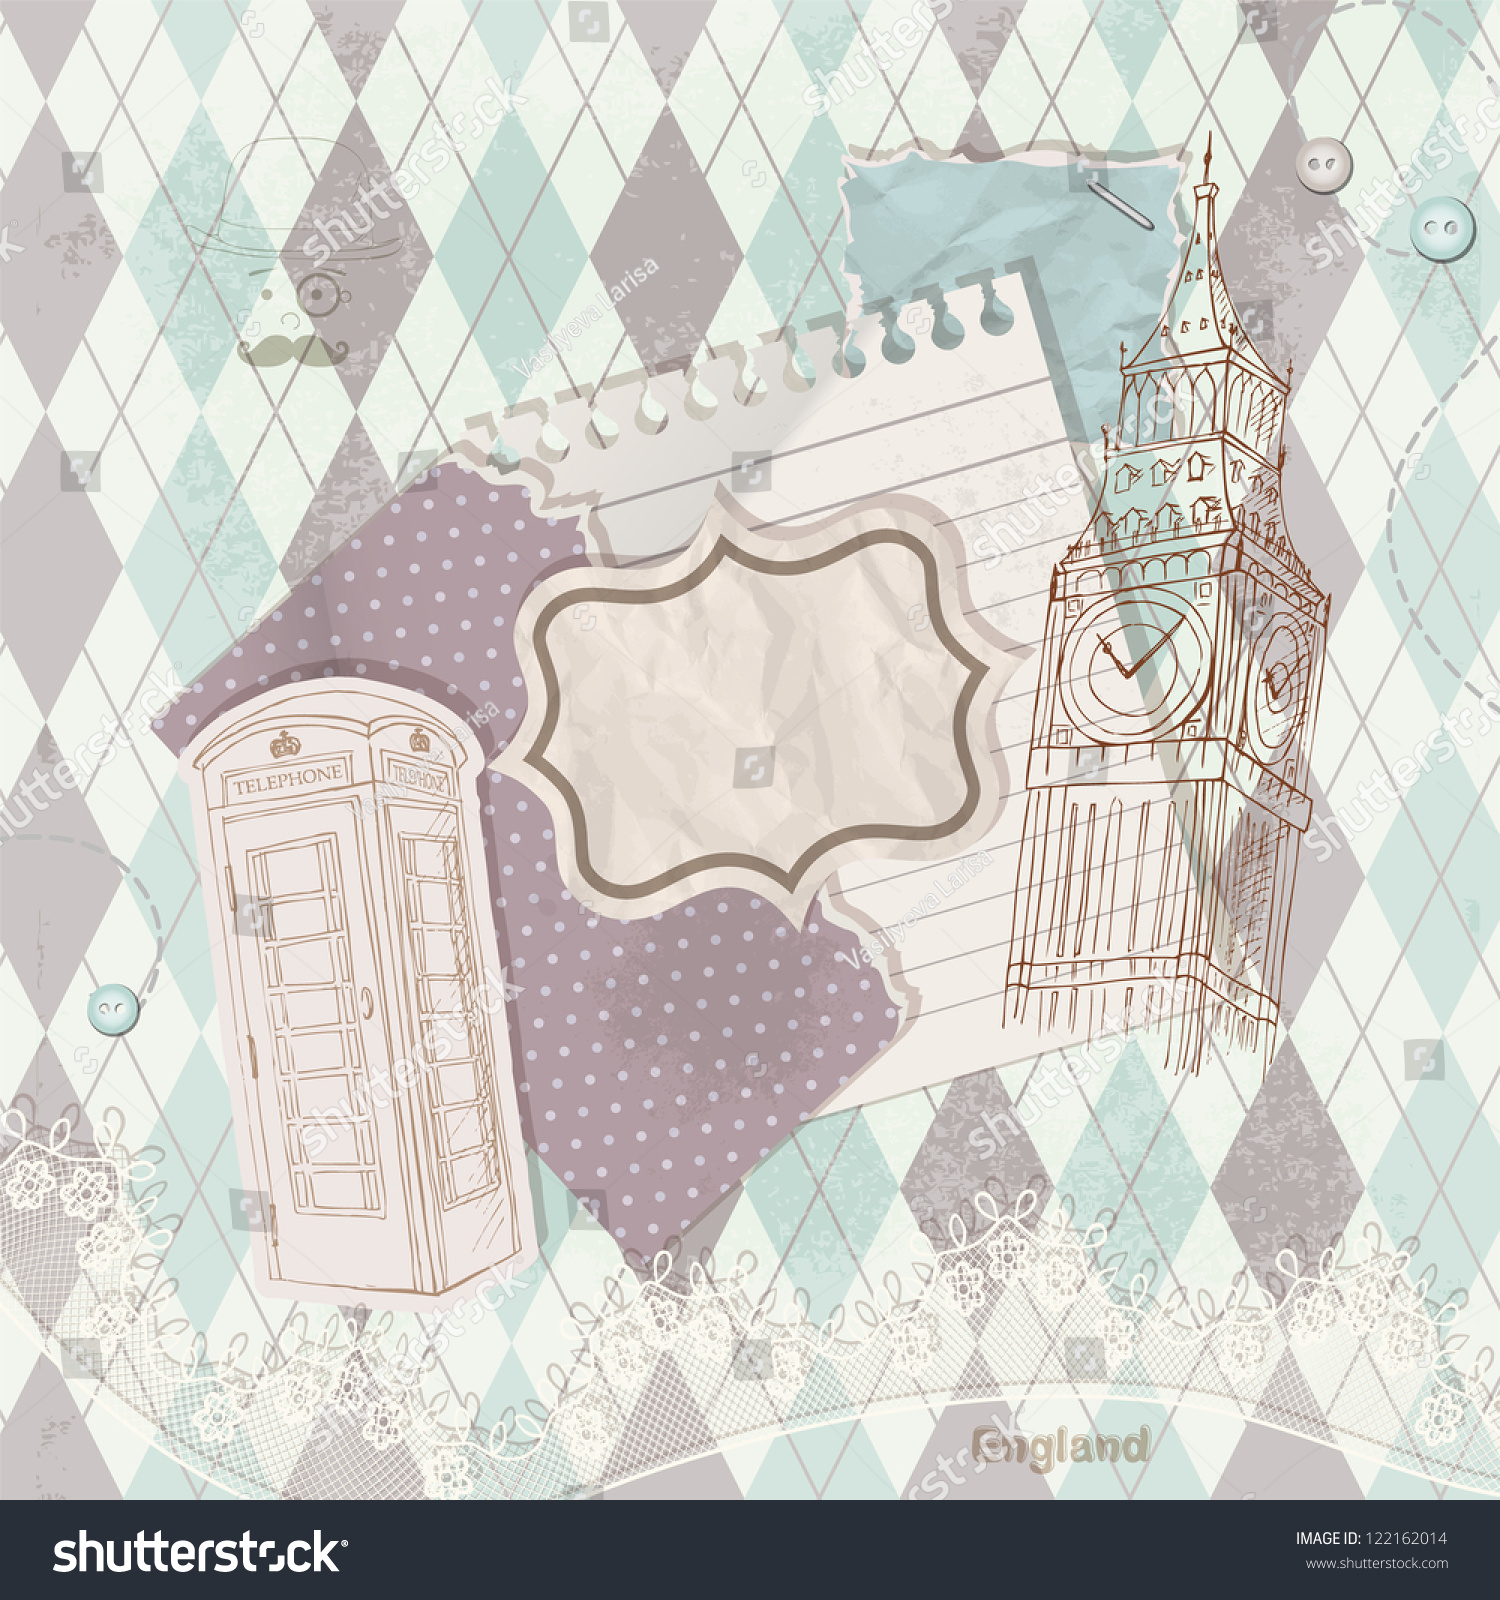 Scrapbook paper england - Vintage Scrapbook Elements In British Style Background With The London Big Ben And Red Telephone